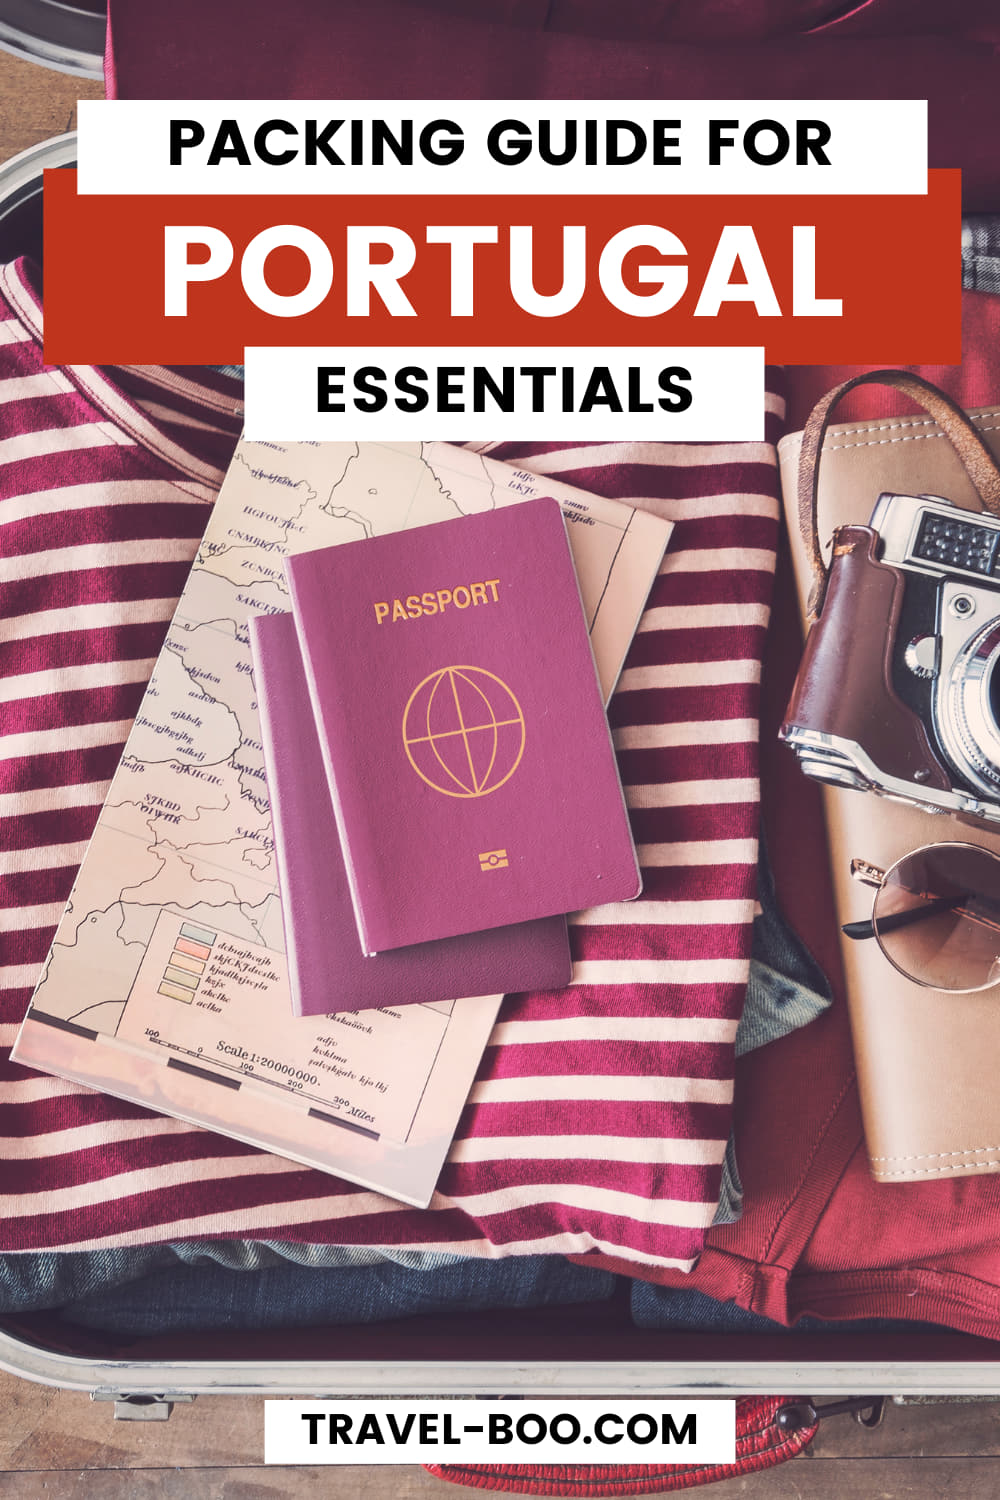 Portugal Packing List - What to pack for a trip to Portugal! Portugal packing, Portugal Travel, Portugal Travel Guide, Portugal Travel Essentials, Portugal Itinerary.